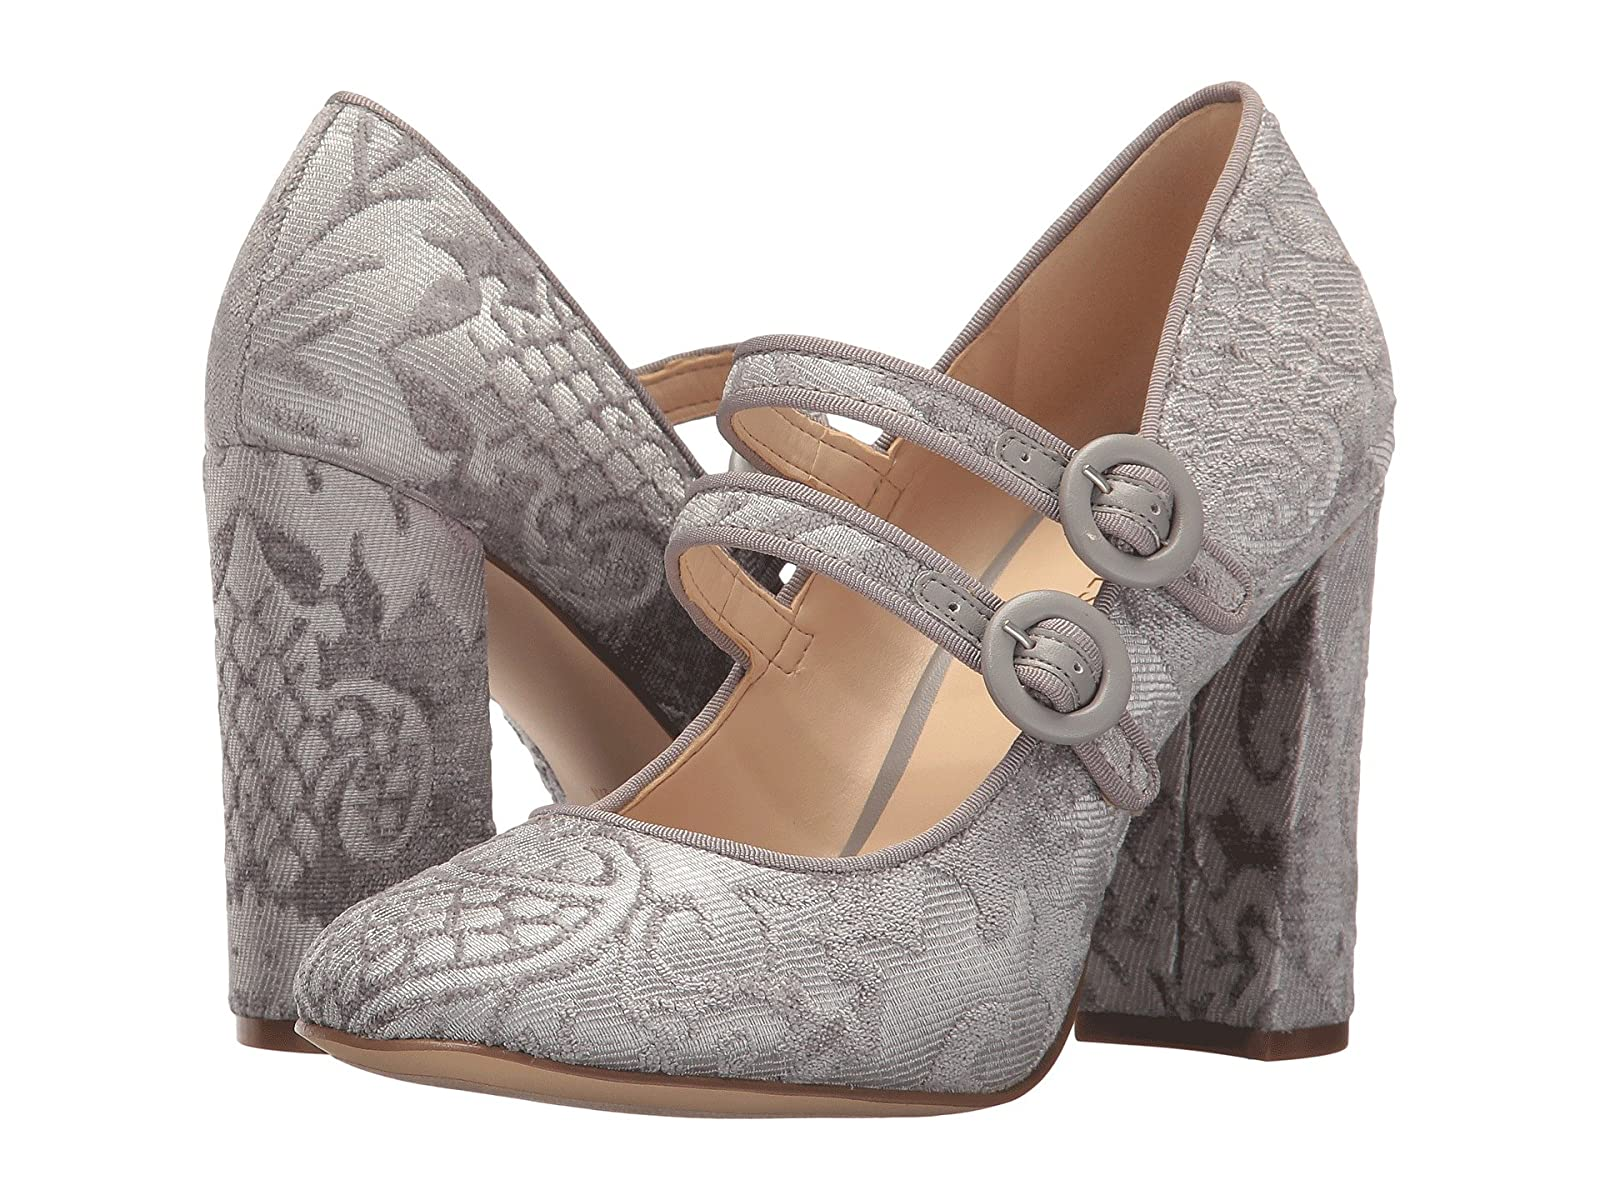 Nine West DabneyCheap and distinctive eye-catching shoes